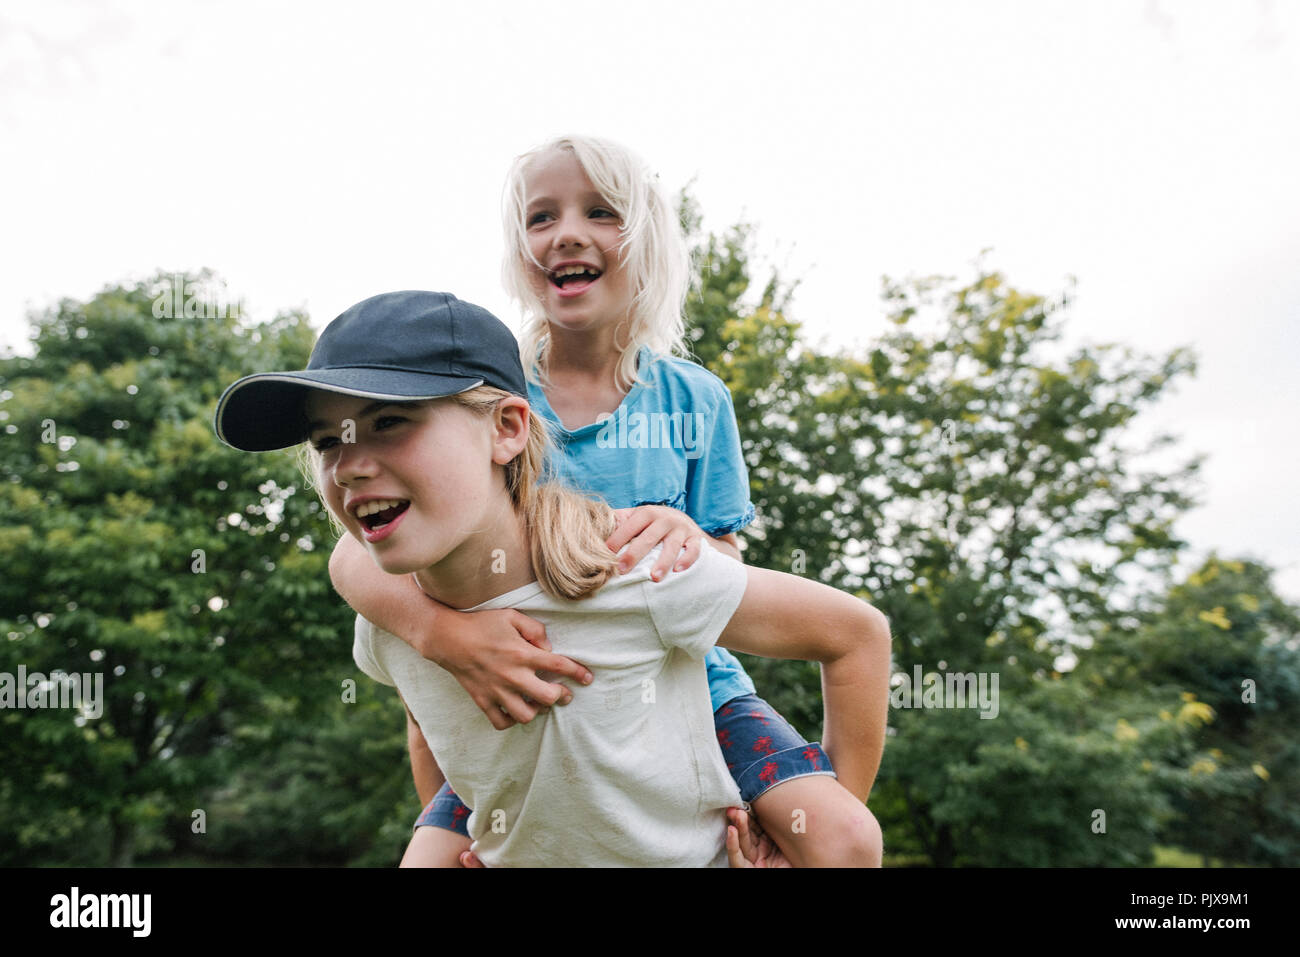 Children playing piggyback in park - Stock Image